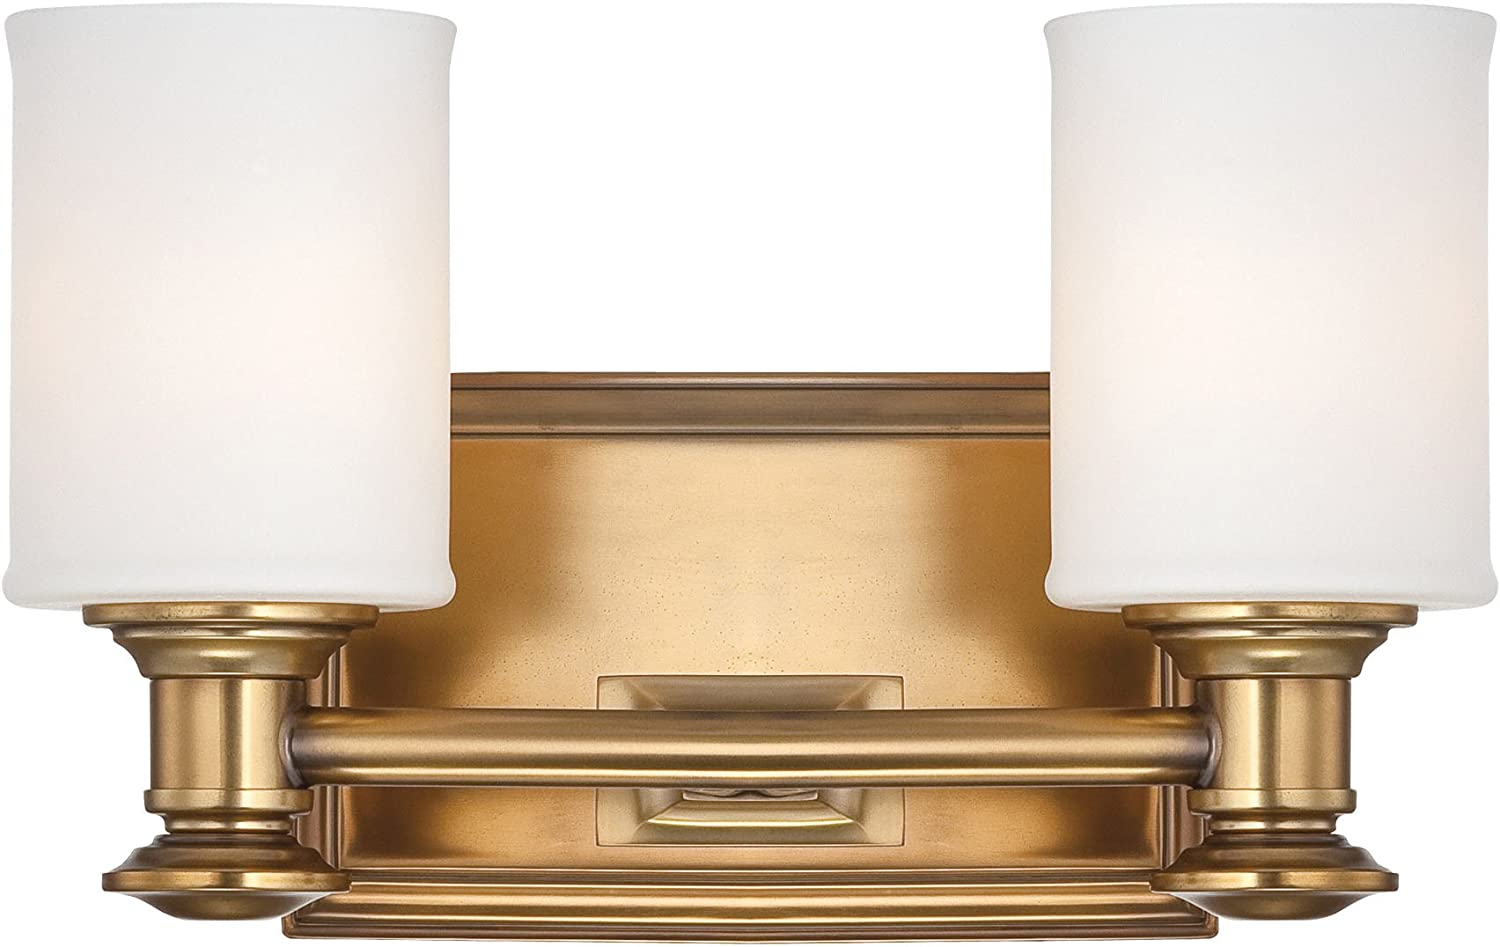 Minka Lavery Wall Light Fixtures Harbour Point 5172-249 Glass Reversible 200w (7 H x 11 W) Vanity Light in Brass